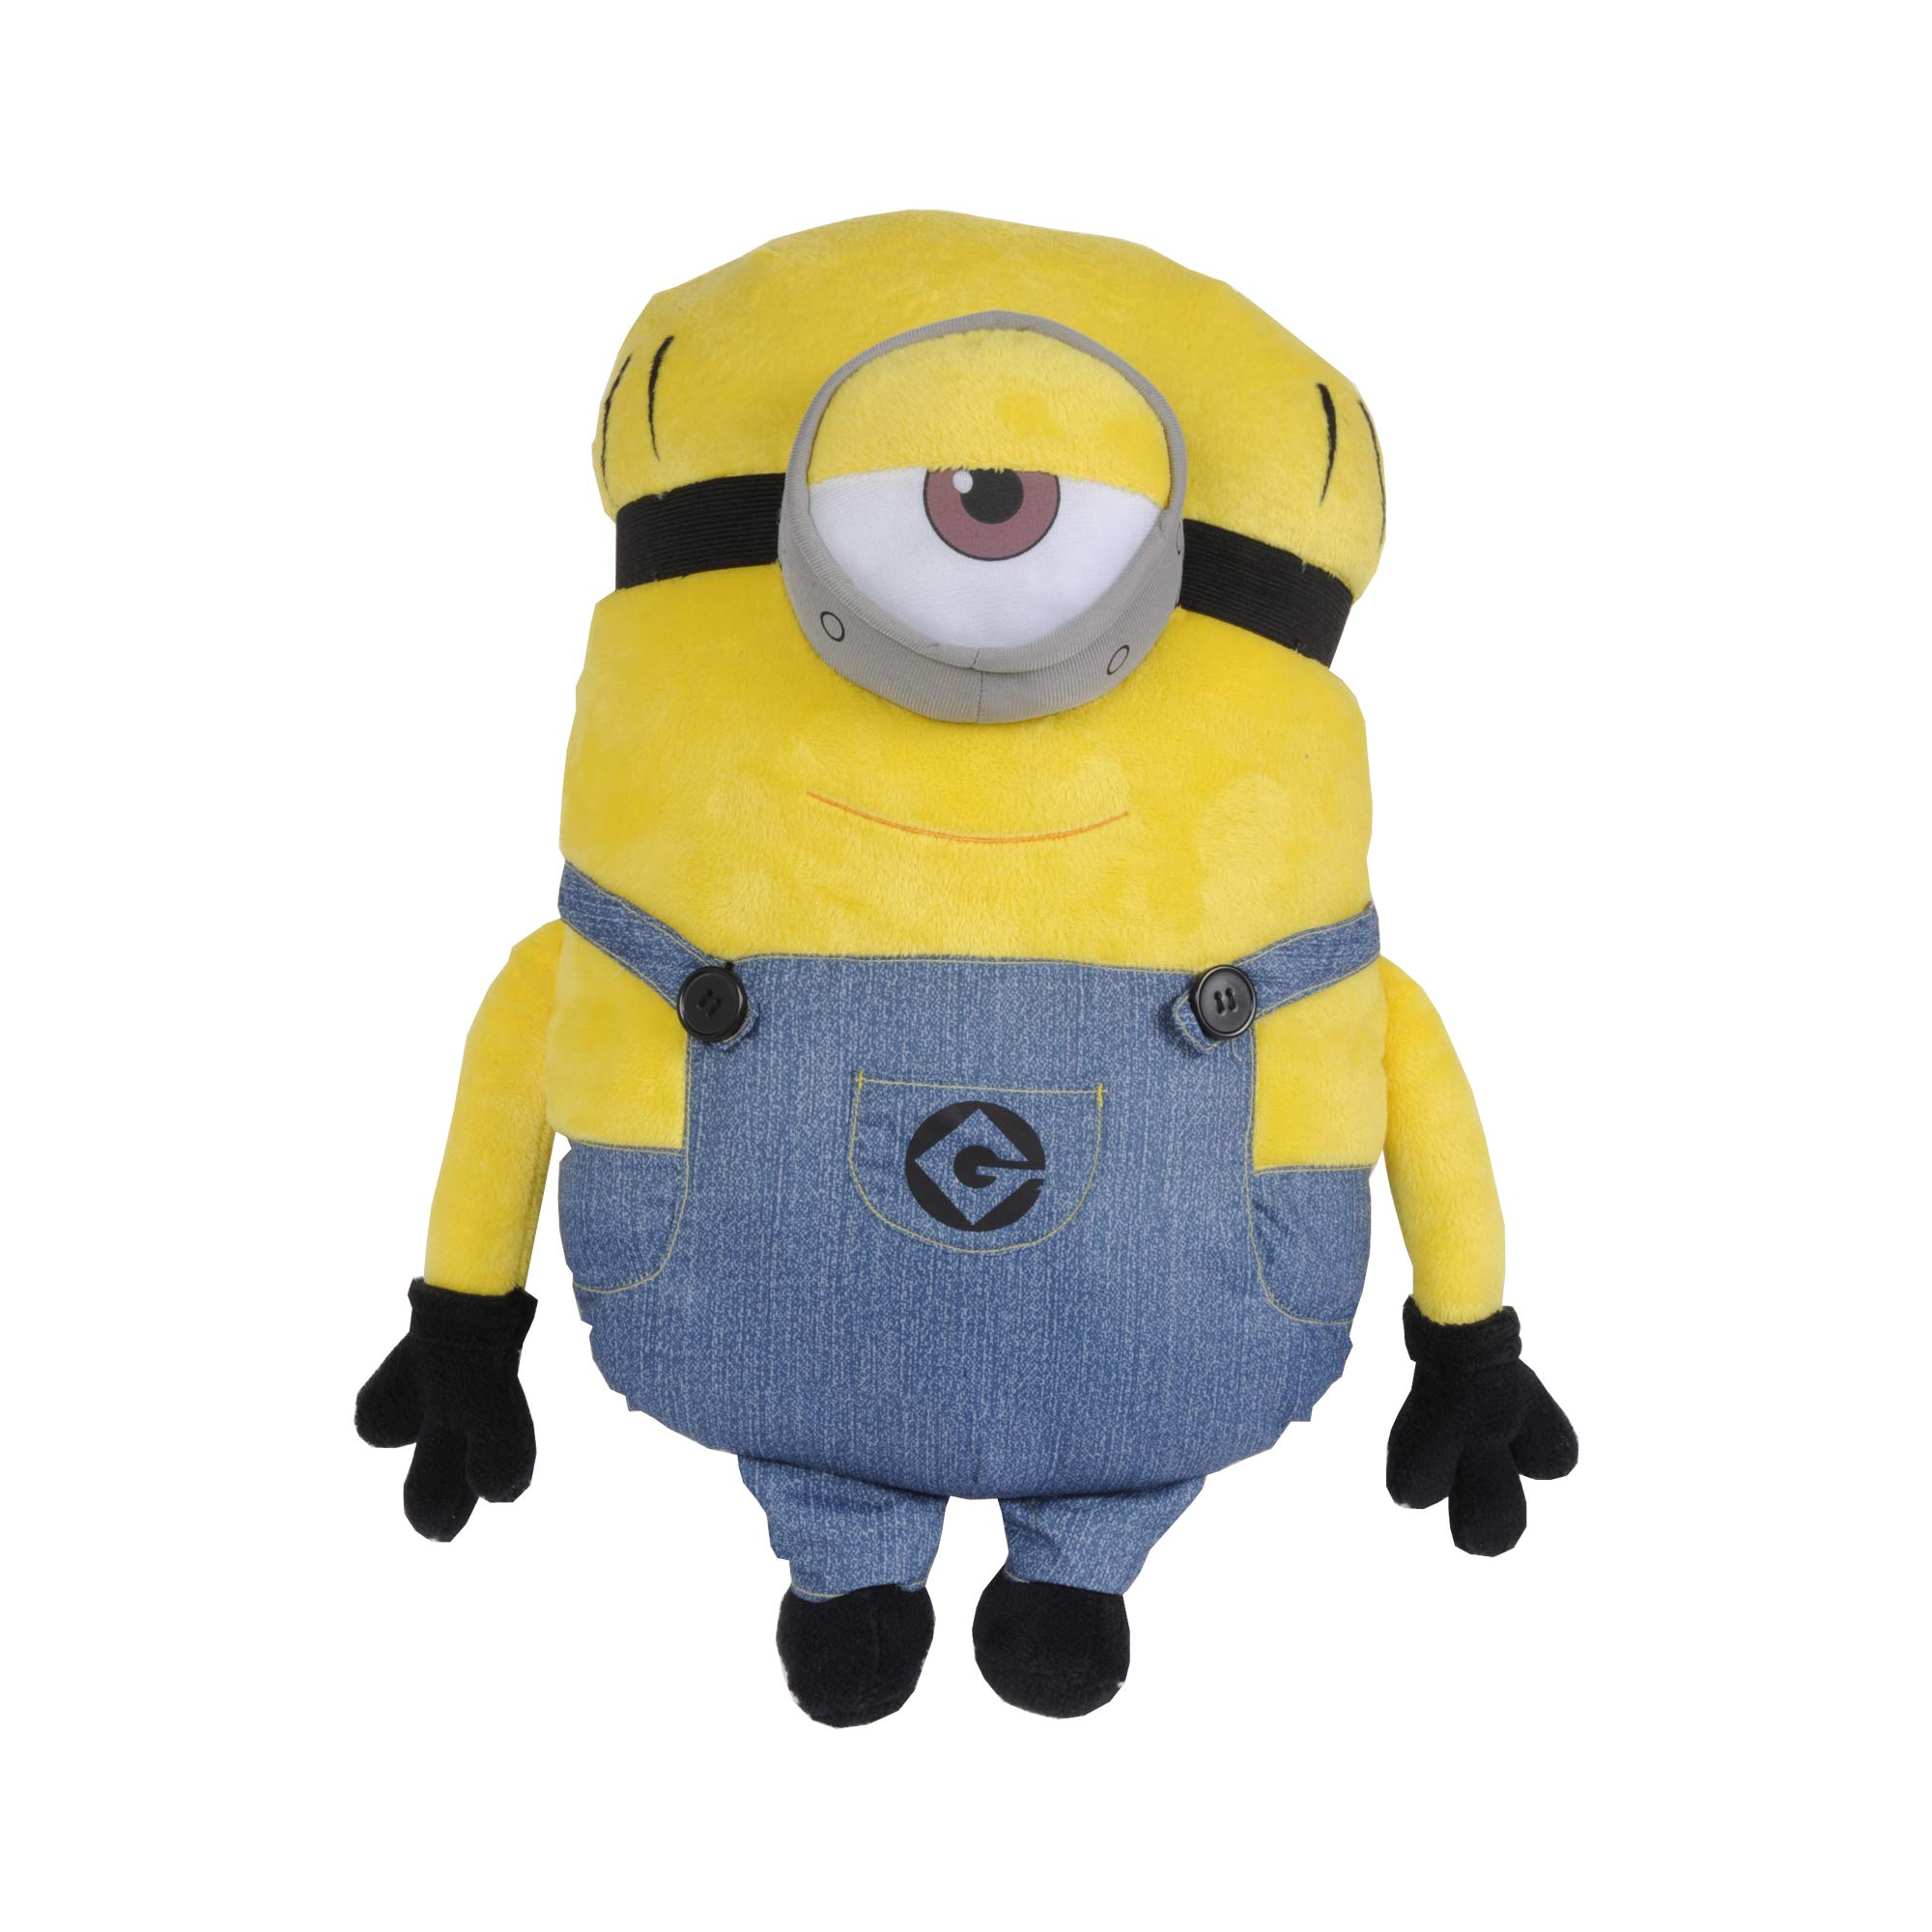 Universal Despicable Me Minions Mel Character Shaped Soft Plush Cuddle Pillow, Yellow